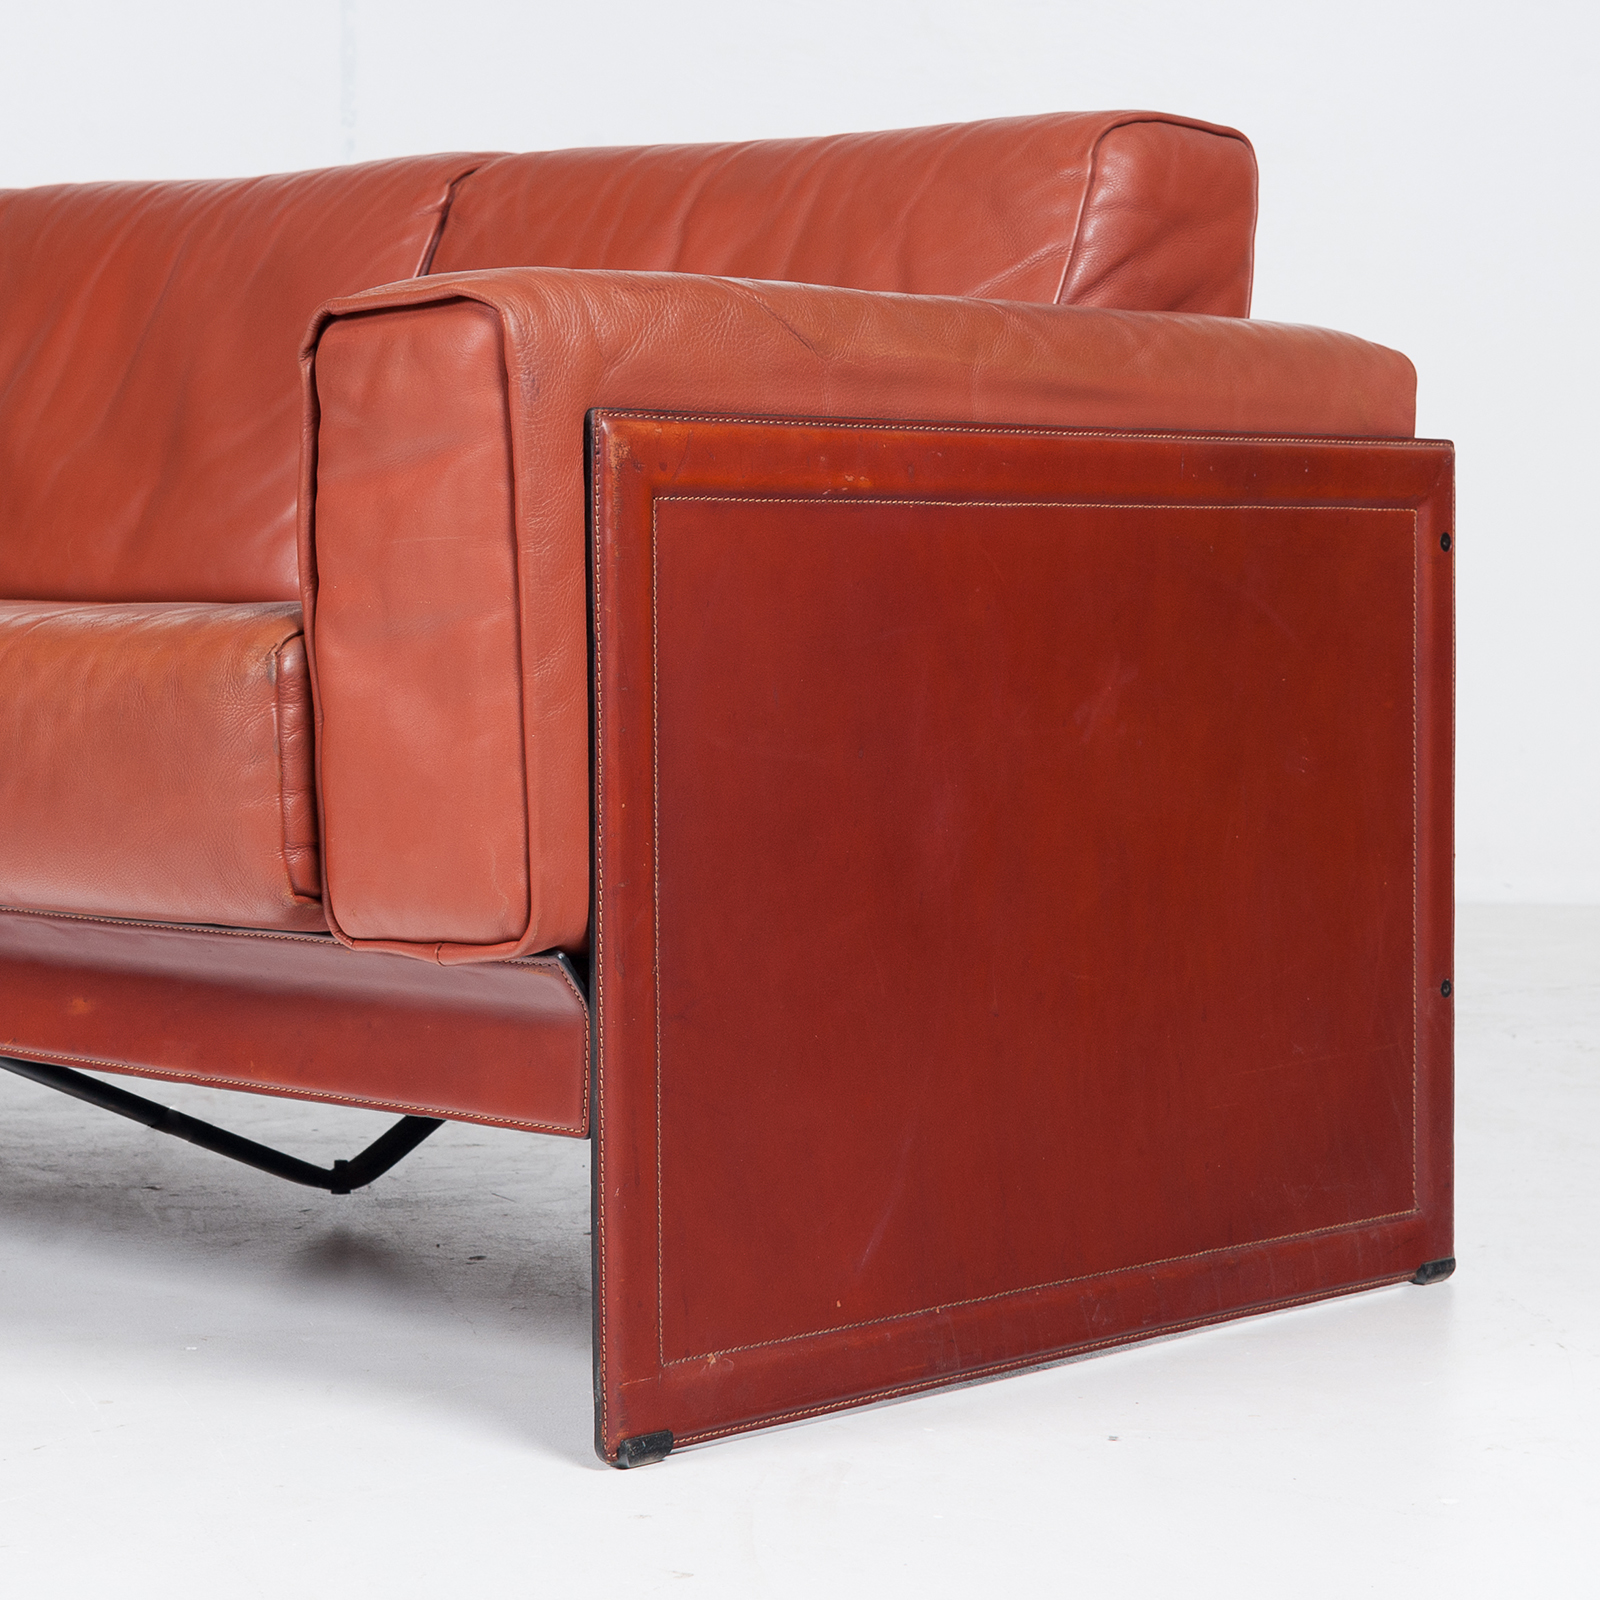 3 Seat Sofa In Leather By Matteo Grassi, 1980s, Italy53